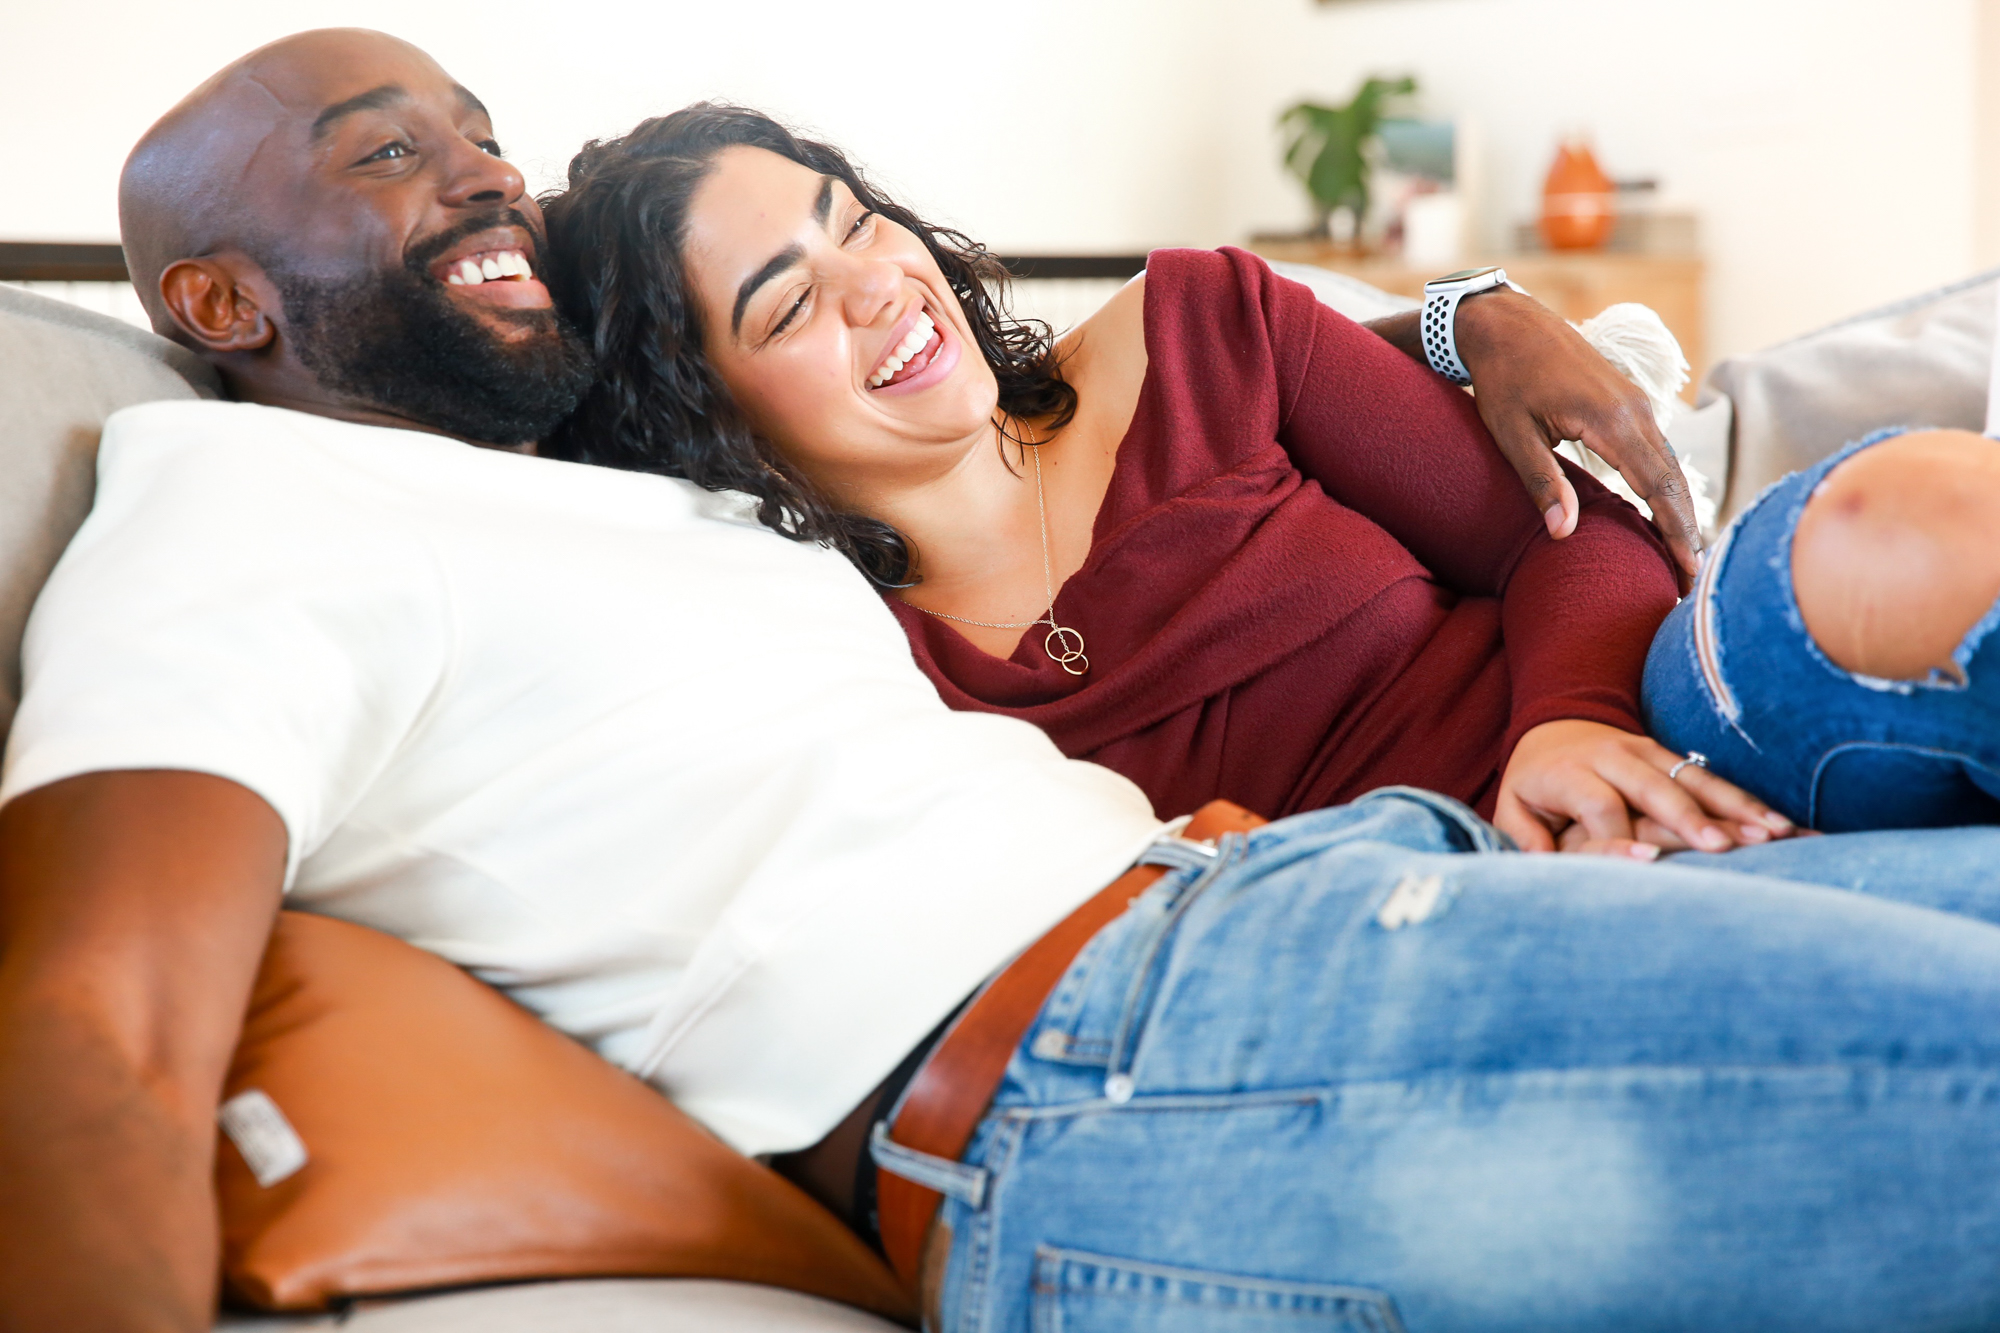 two people are lying together and embracing with one person putting their arm around the other and they are both smiling | The Best Sex Toys for Couples | Passion by Kait